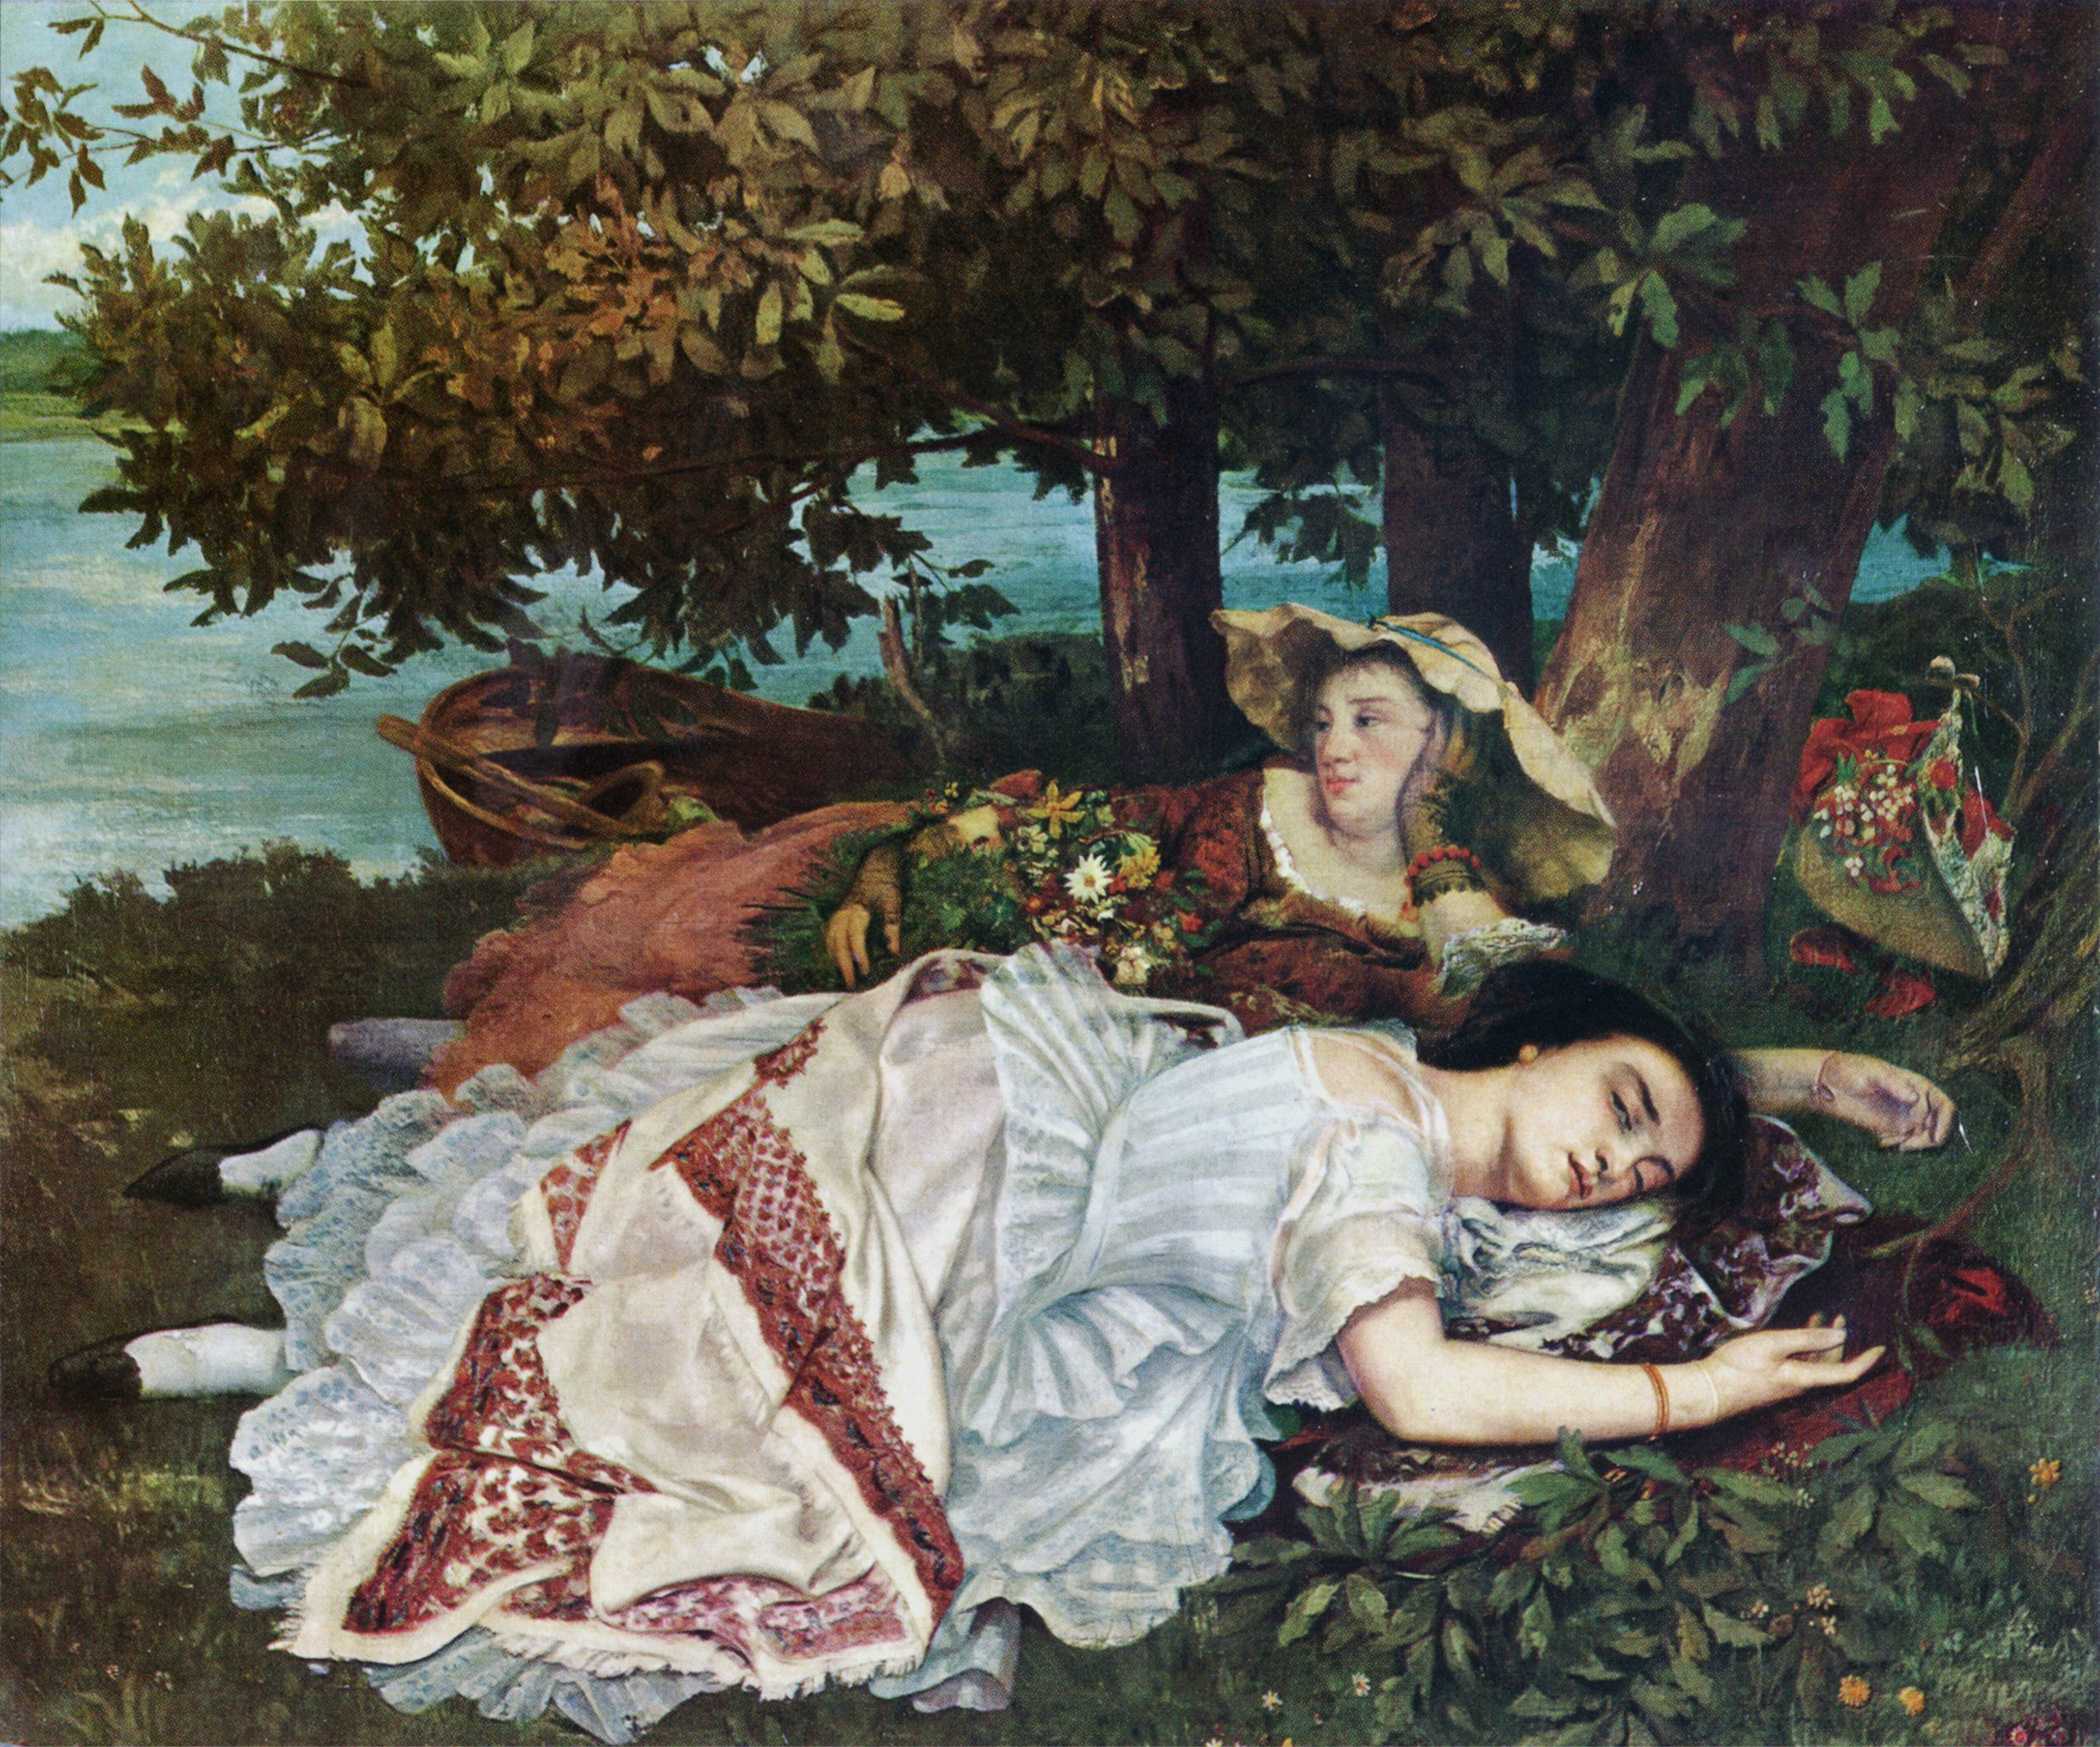 Figura 24 - Gustave Courbet, As senhoritas da beira do Sena (verão).